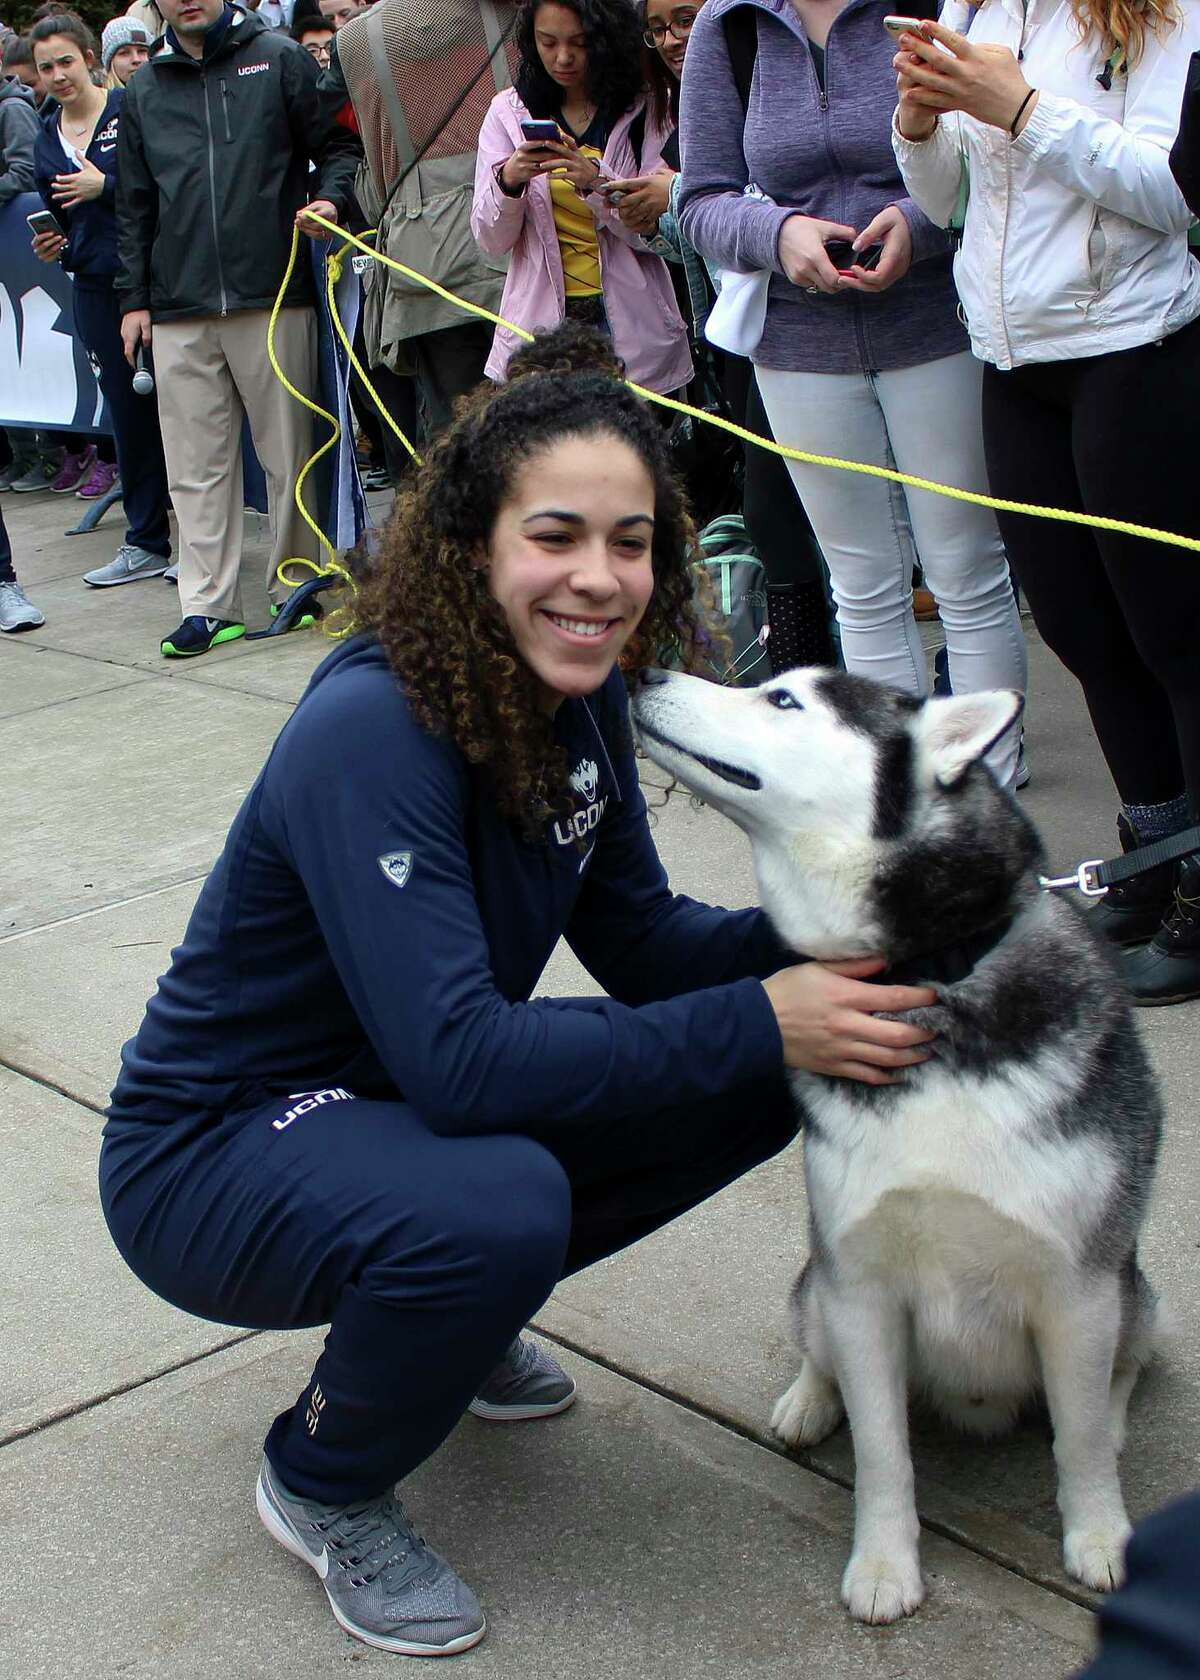 Connecticut's Kia Nurse pets school mascot Jonathan, the Husky, during a send-off rally for the women's basketball team Tuesday, March 28, 2017, outside Gampel Pavilion in Storrs, Conn., as they prepare to board a bus to depart for the Final Four of the NCAA college basketball tournament in Dallas. (AP Photo/Pat Eaton-Robb) ORG XMIT: RPPR103